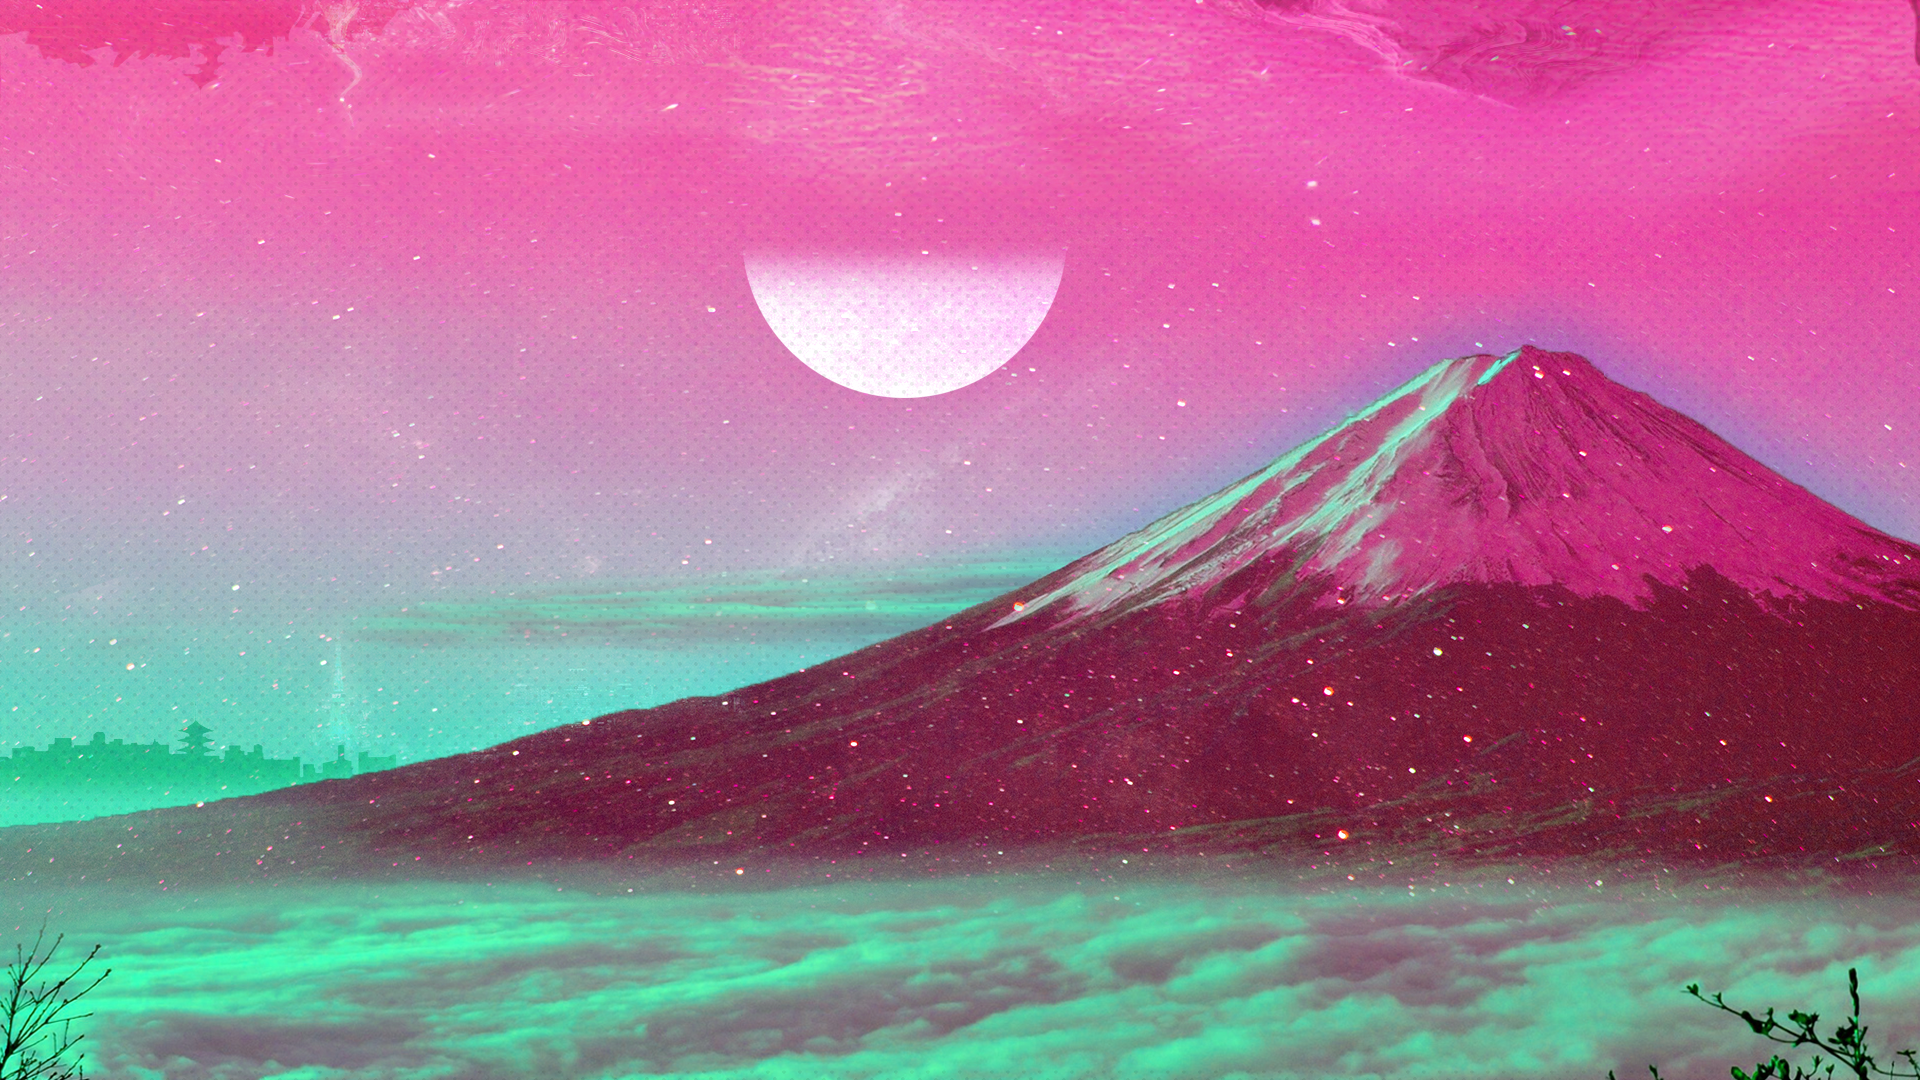 Vapourwave styled mount Fuji [1920 1080] wallpapers 1920x1080